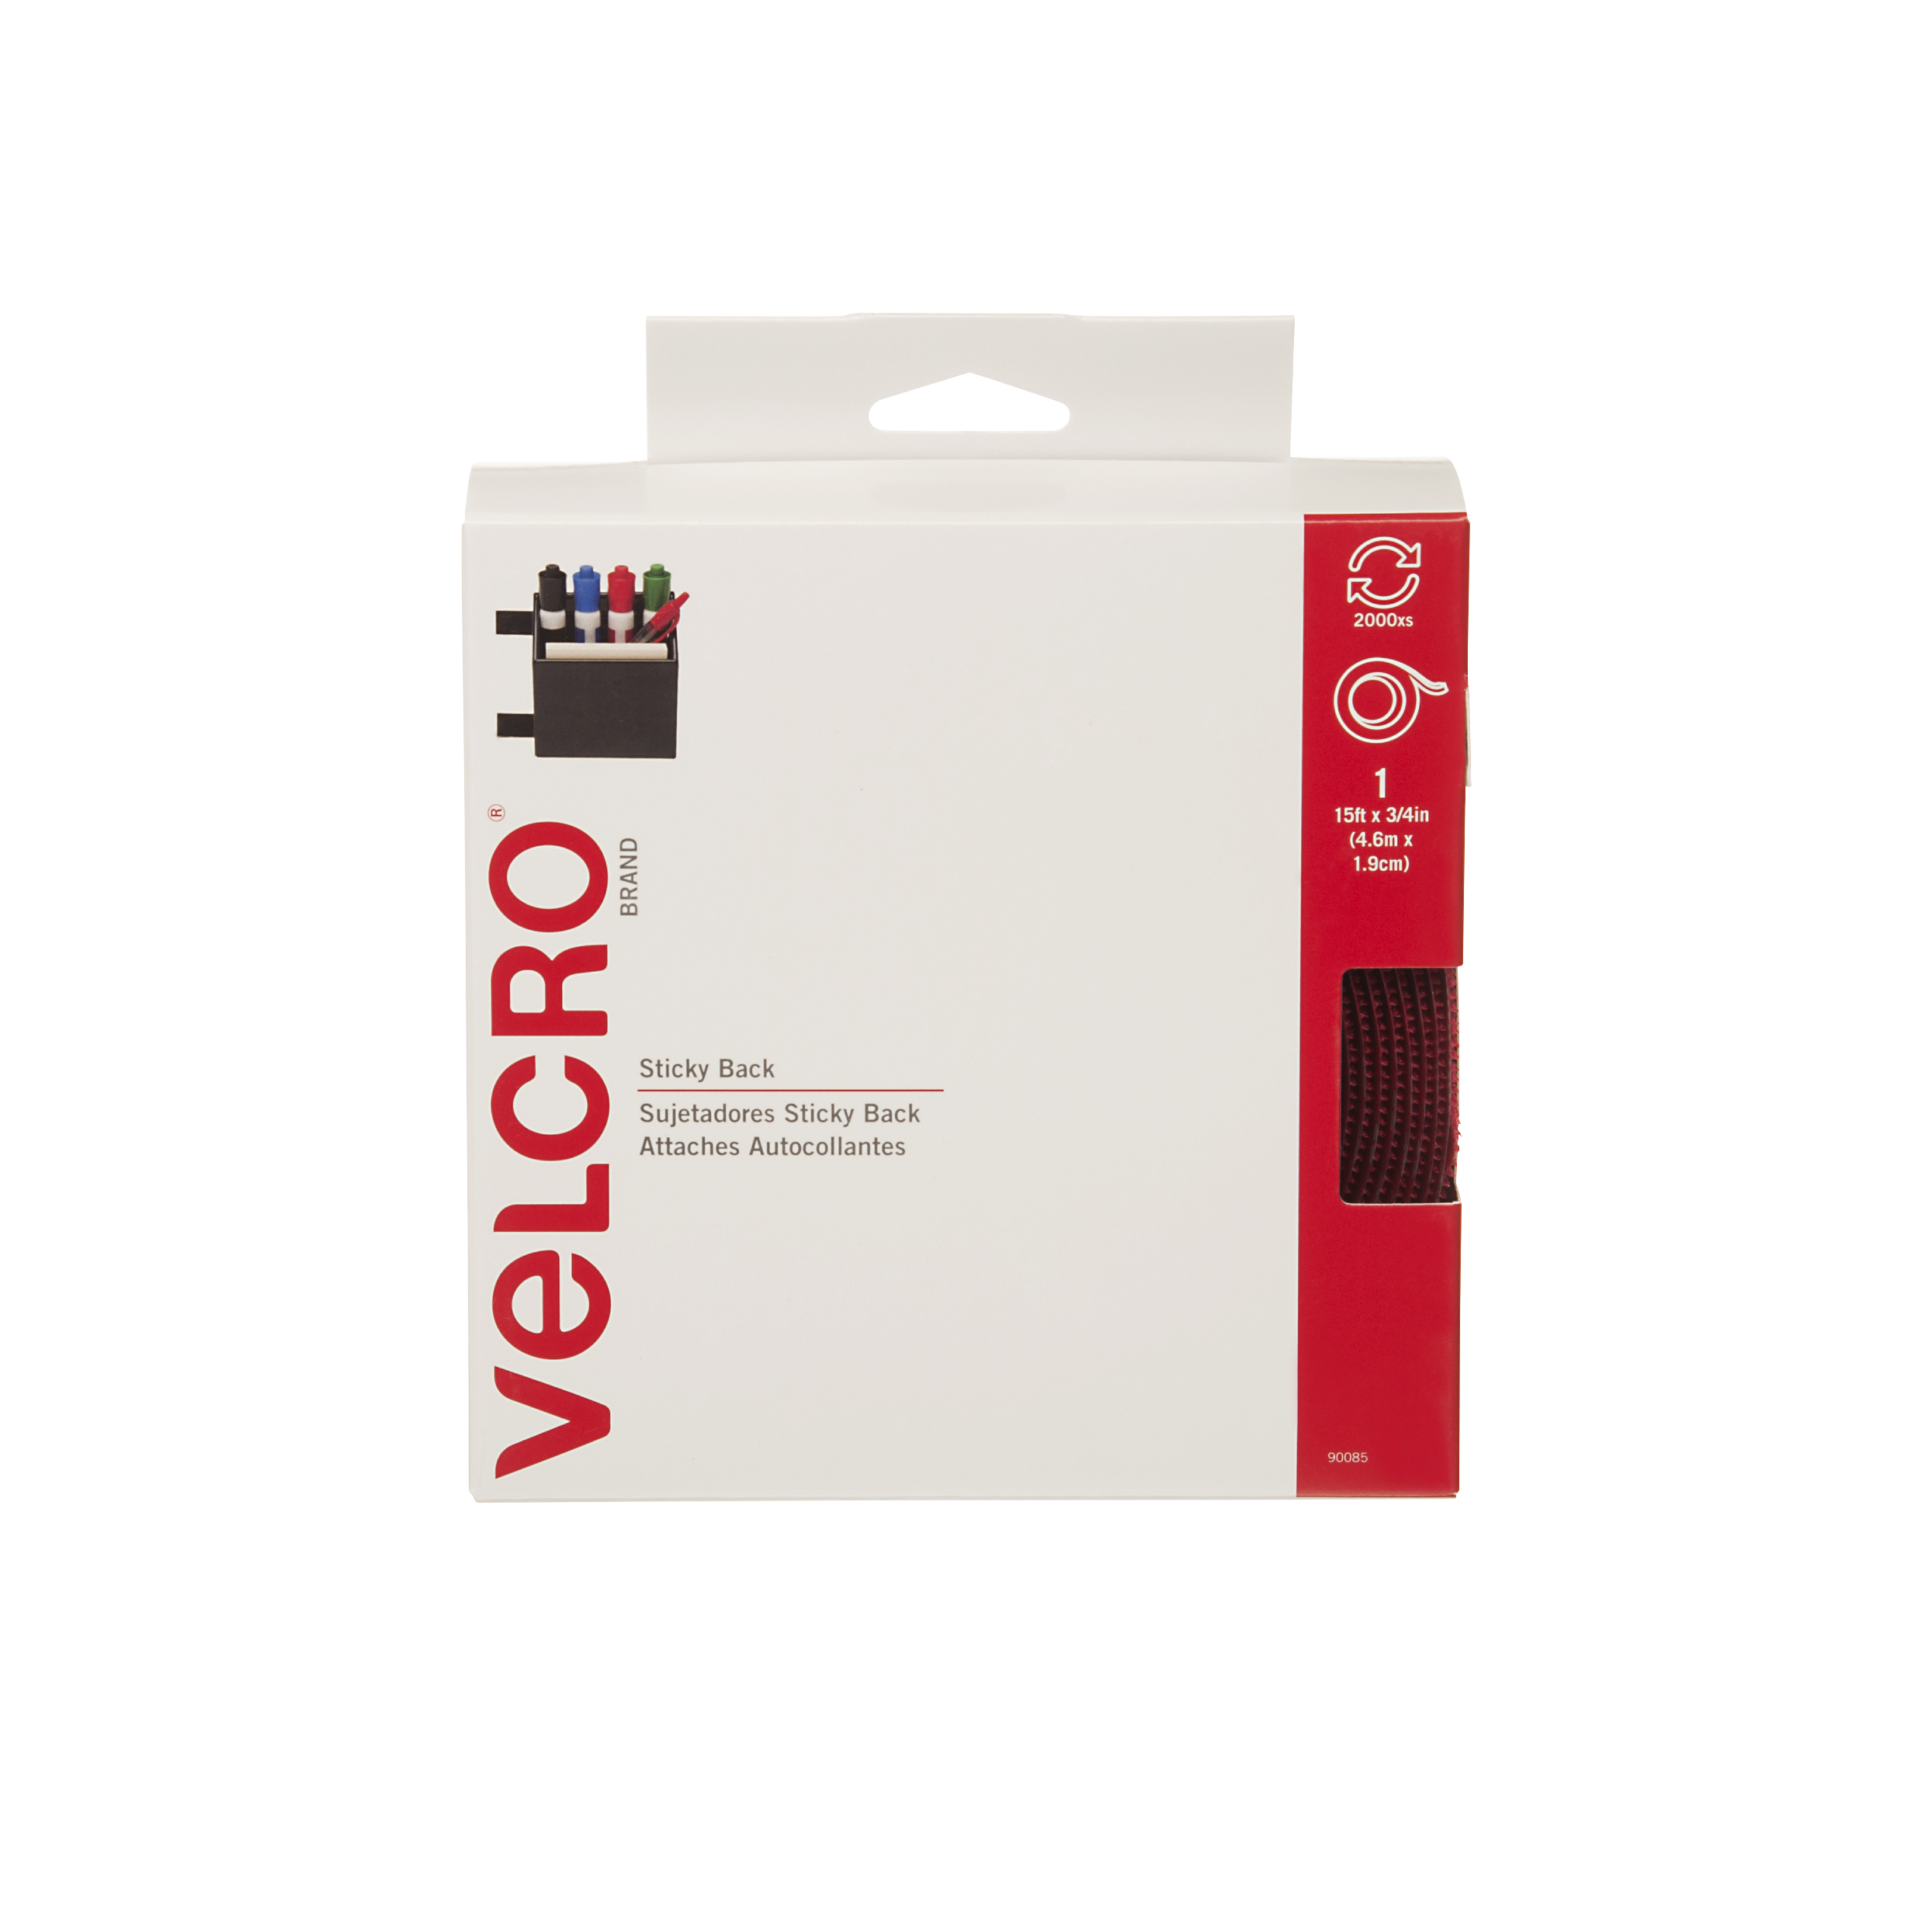 VELCRO Brand Sticky Back Tape, Red